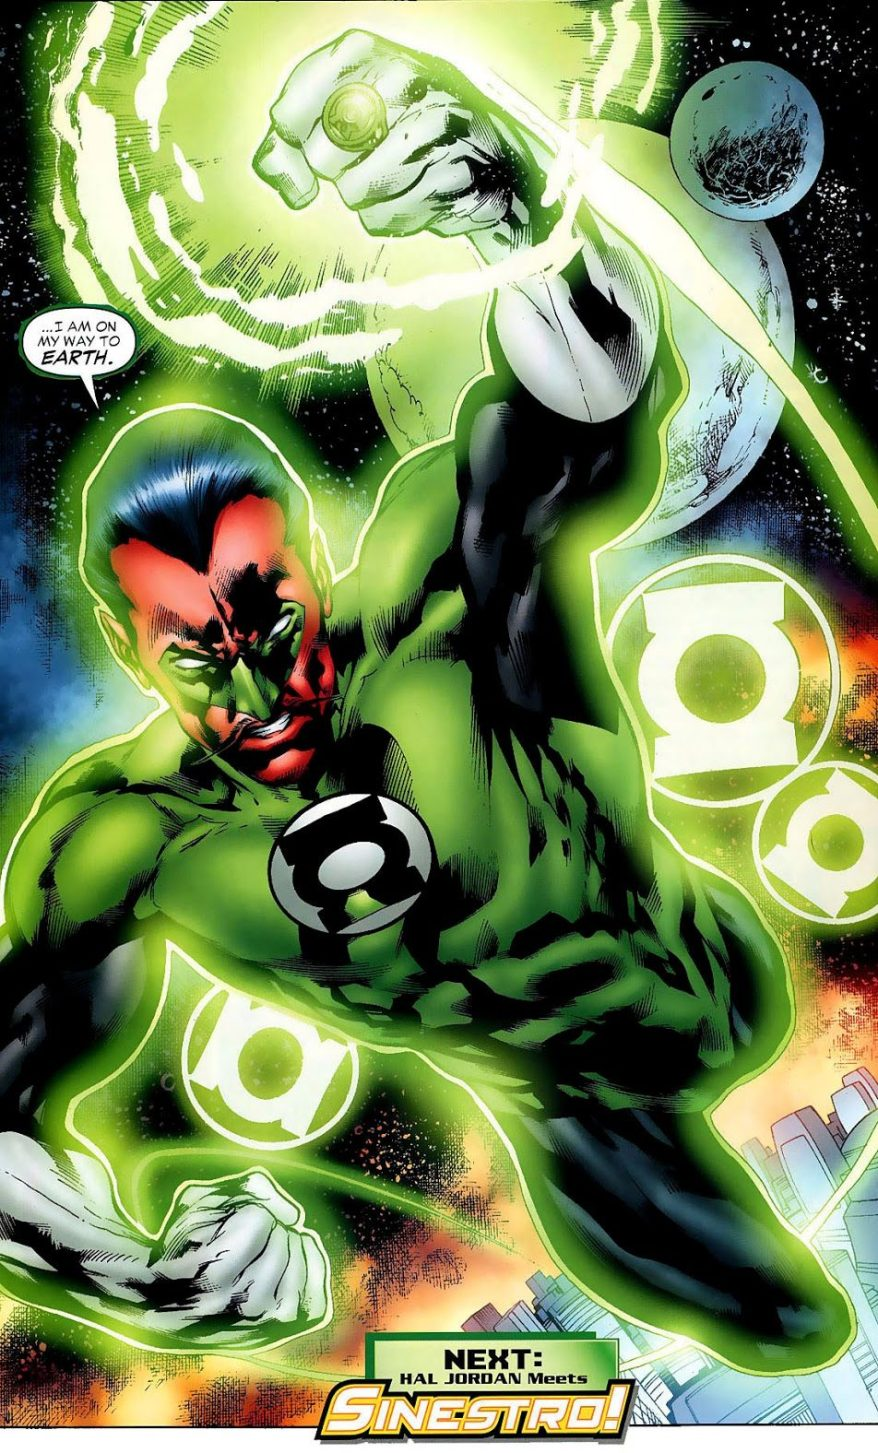 Sinestro (Green Lantern Vol. 4 #31)